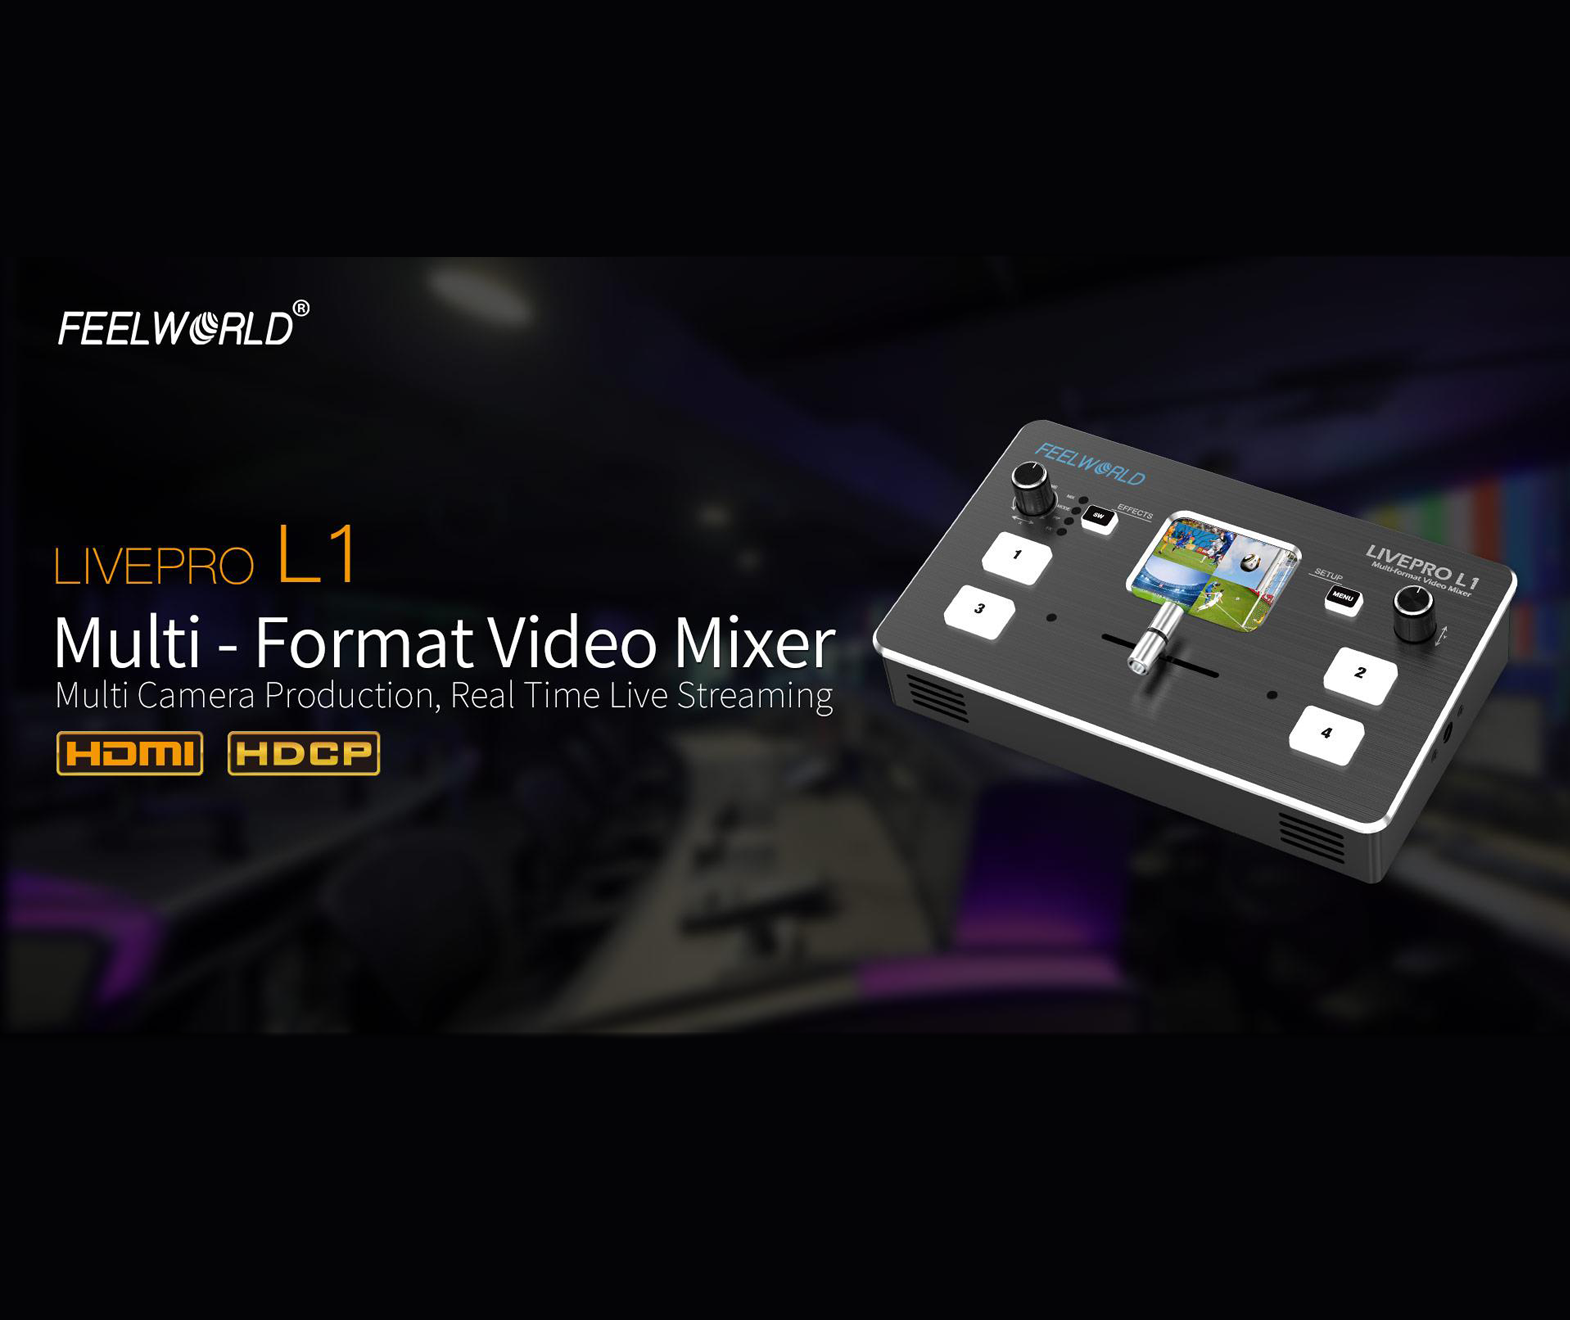 FeelWorld LIVEPRO L1 (RGBlink mini) Multi-format Video Mixer/Switcher